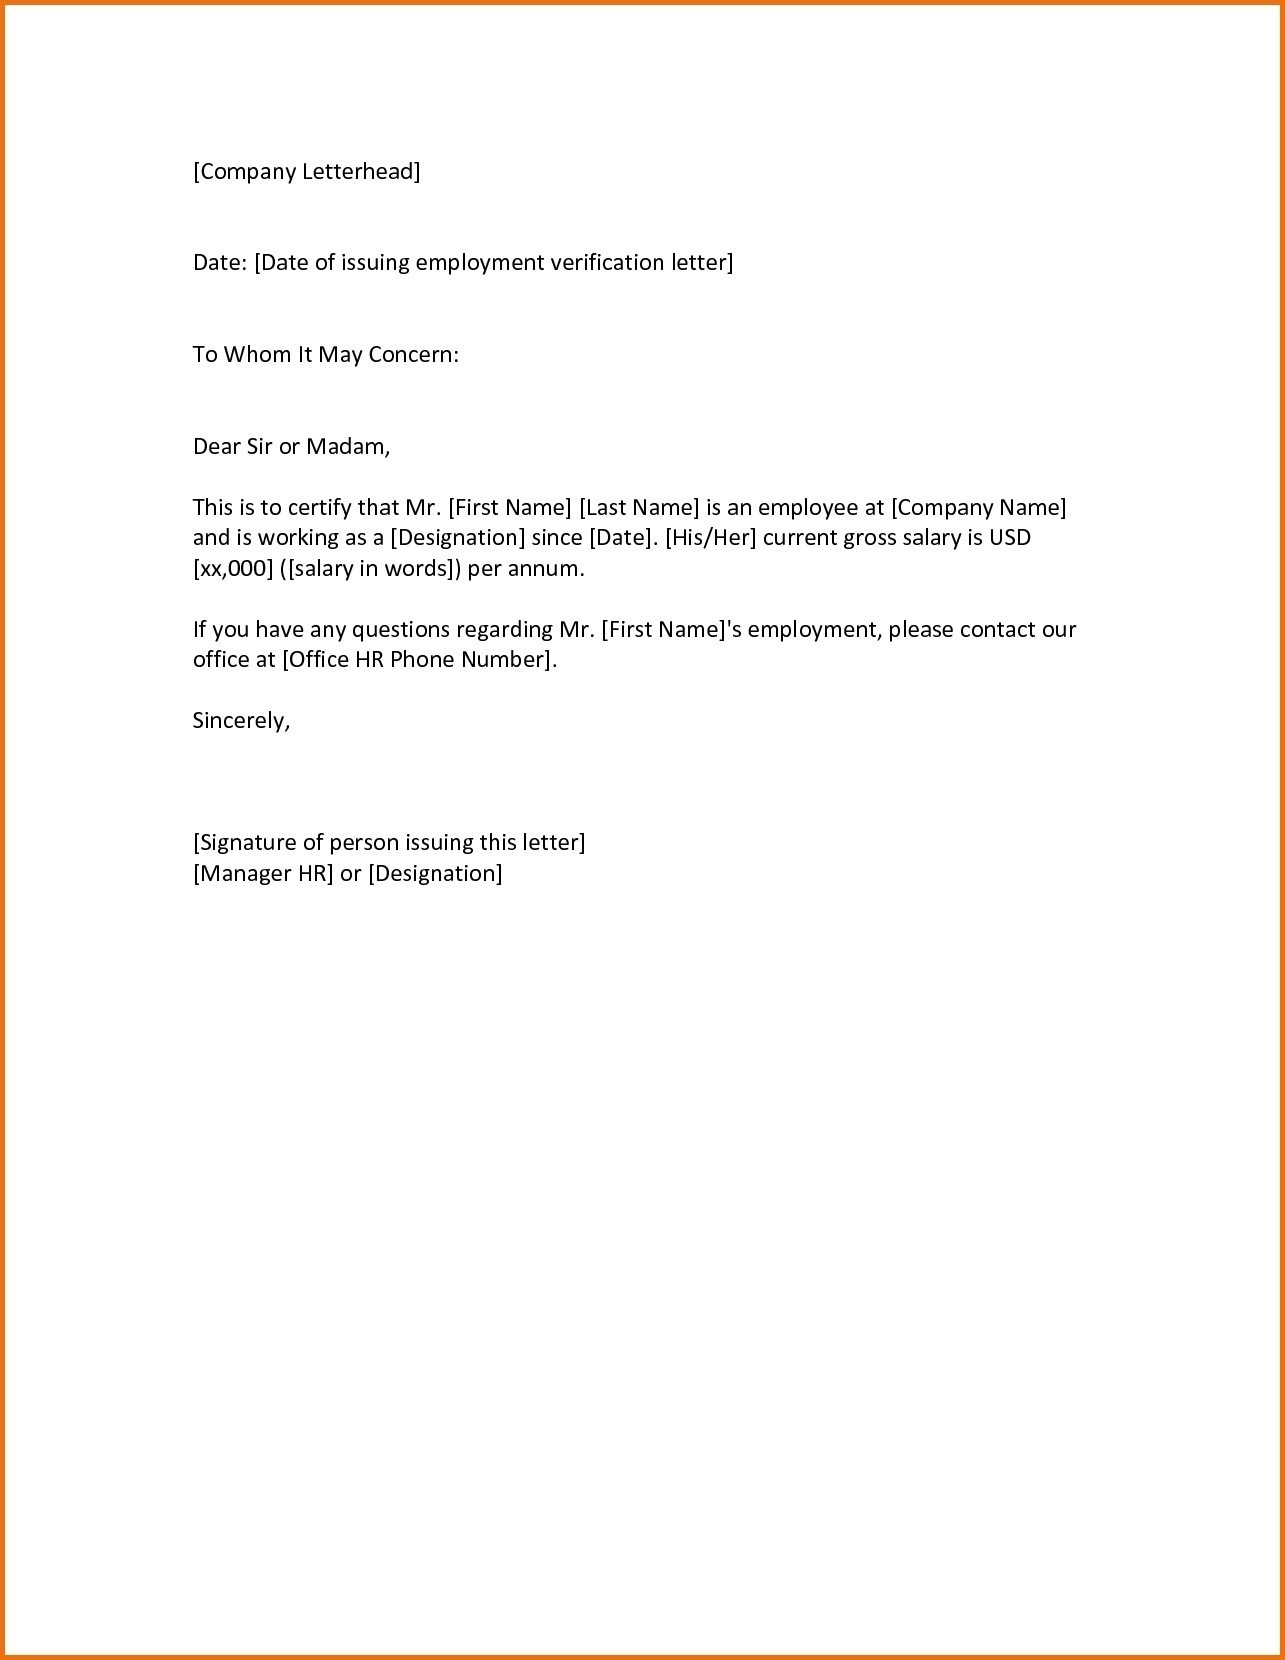 employment verification letter to whom it may concern template Collection-Request Letter format to whom It May Concern Fresh Pany Letter format for Employee New Employment 12-r